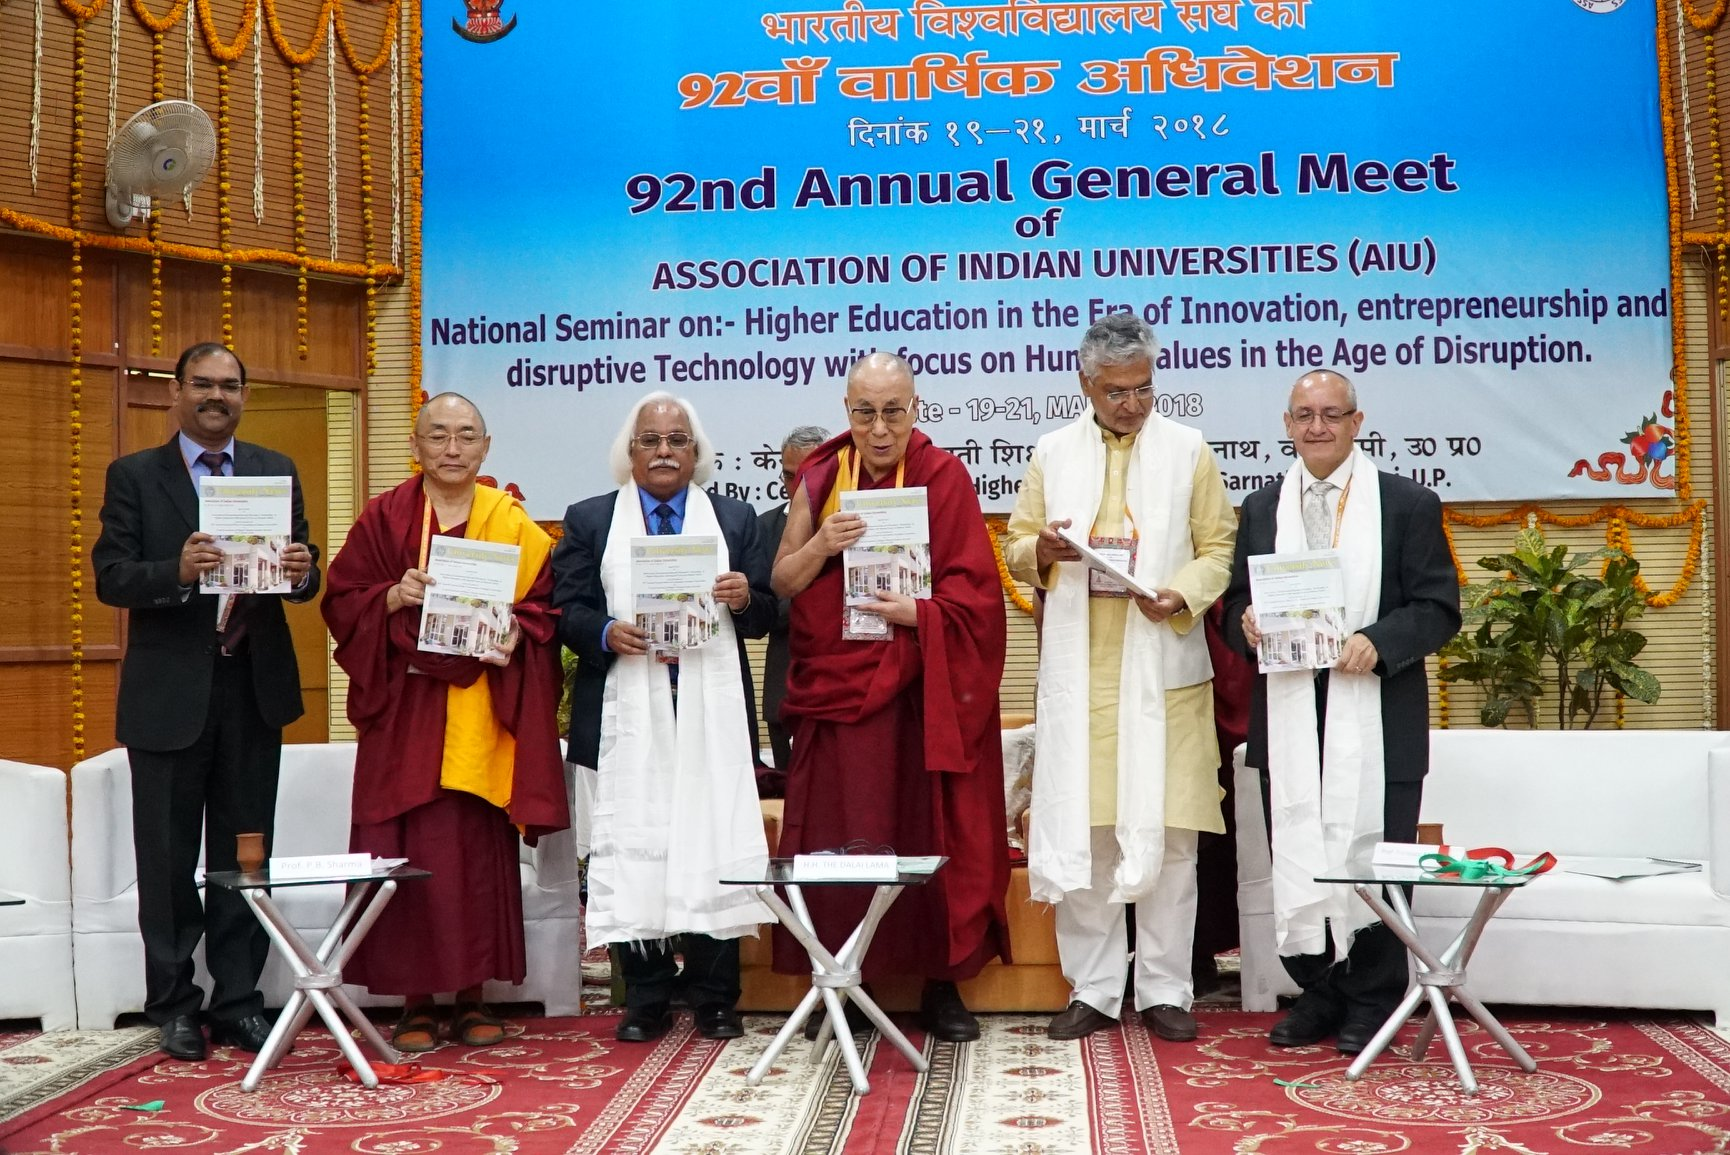 411c9599d2cb His Holiness the Dalai Lama releases the special issue of the 'University  News' and other publications of the Association of Indian Universities at  the 92nd ...